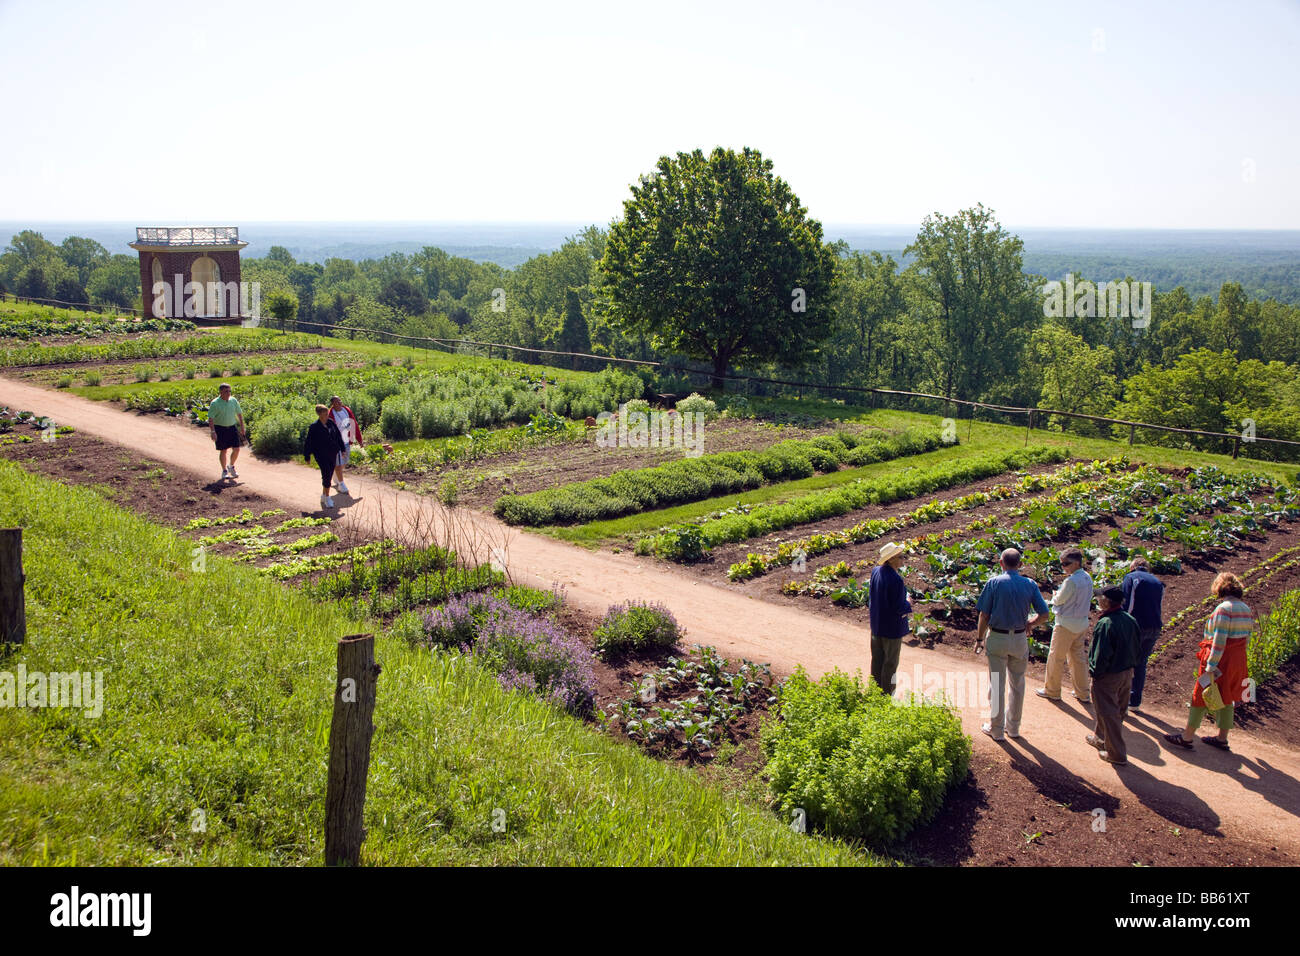 Tourists Visit The Vegetable Flower Gardens At